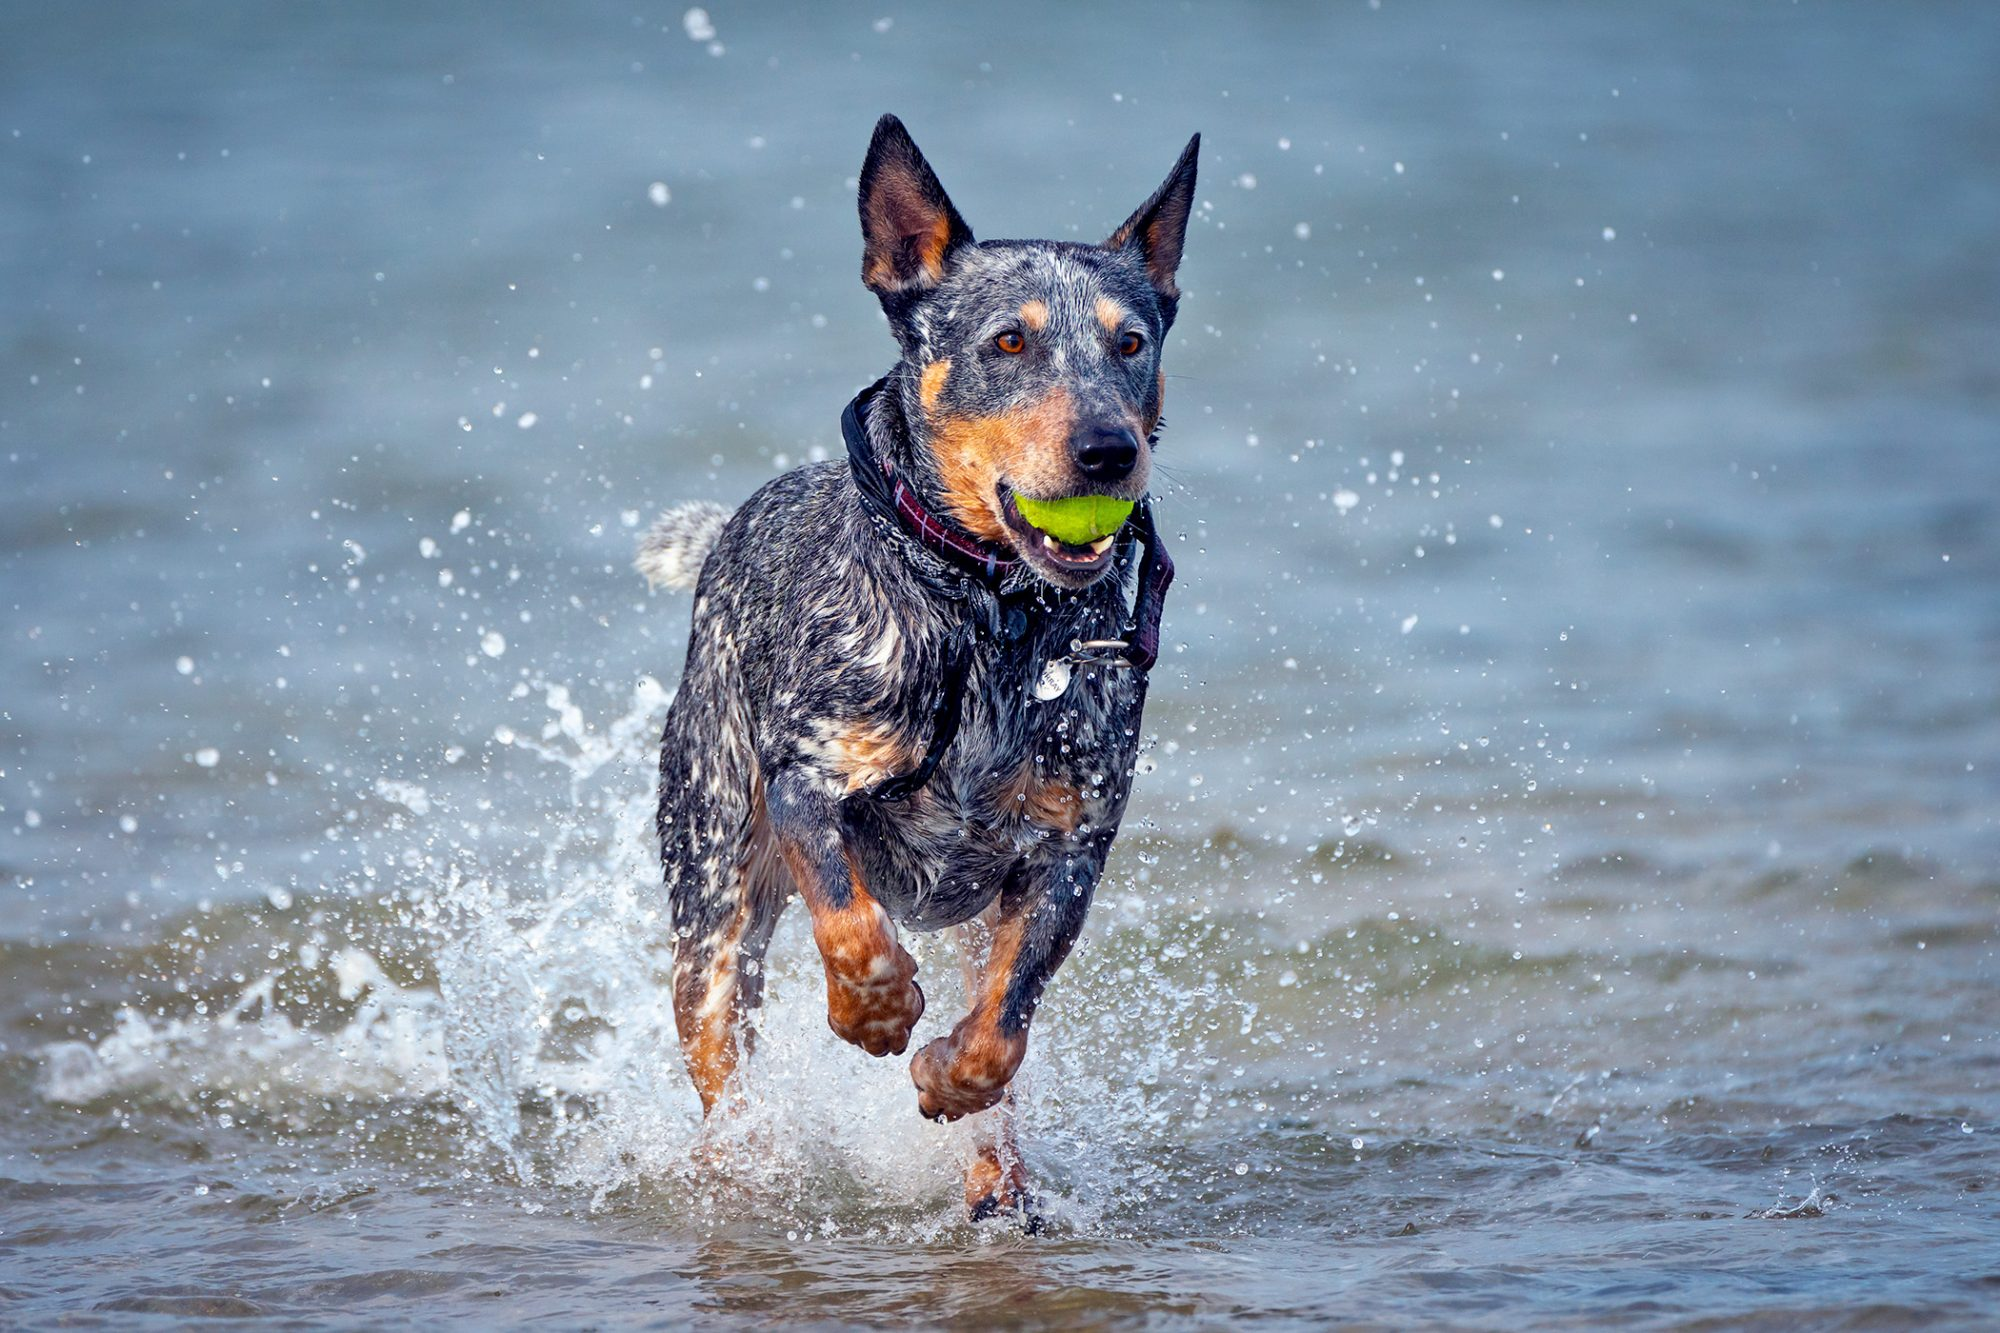 Australian Cattle Dog runs through water with tennis ball in mouth